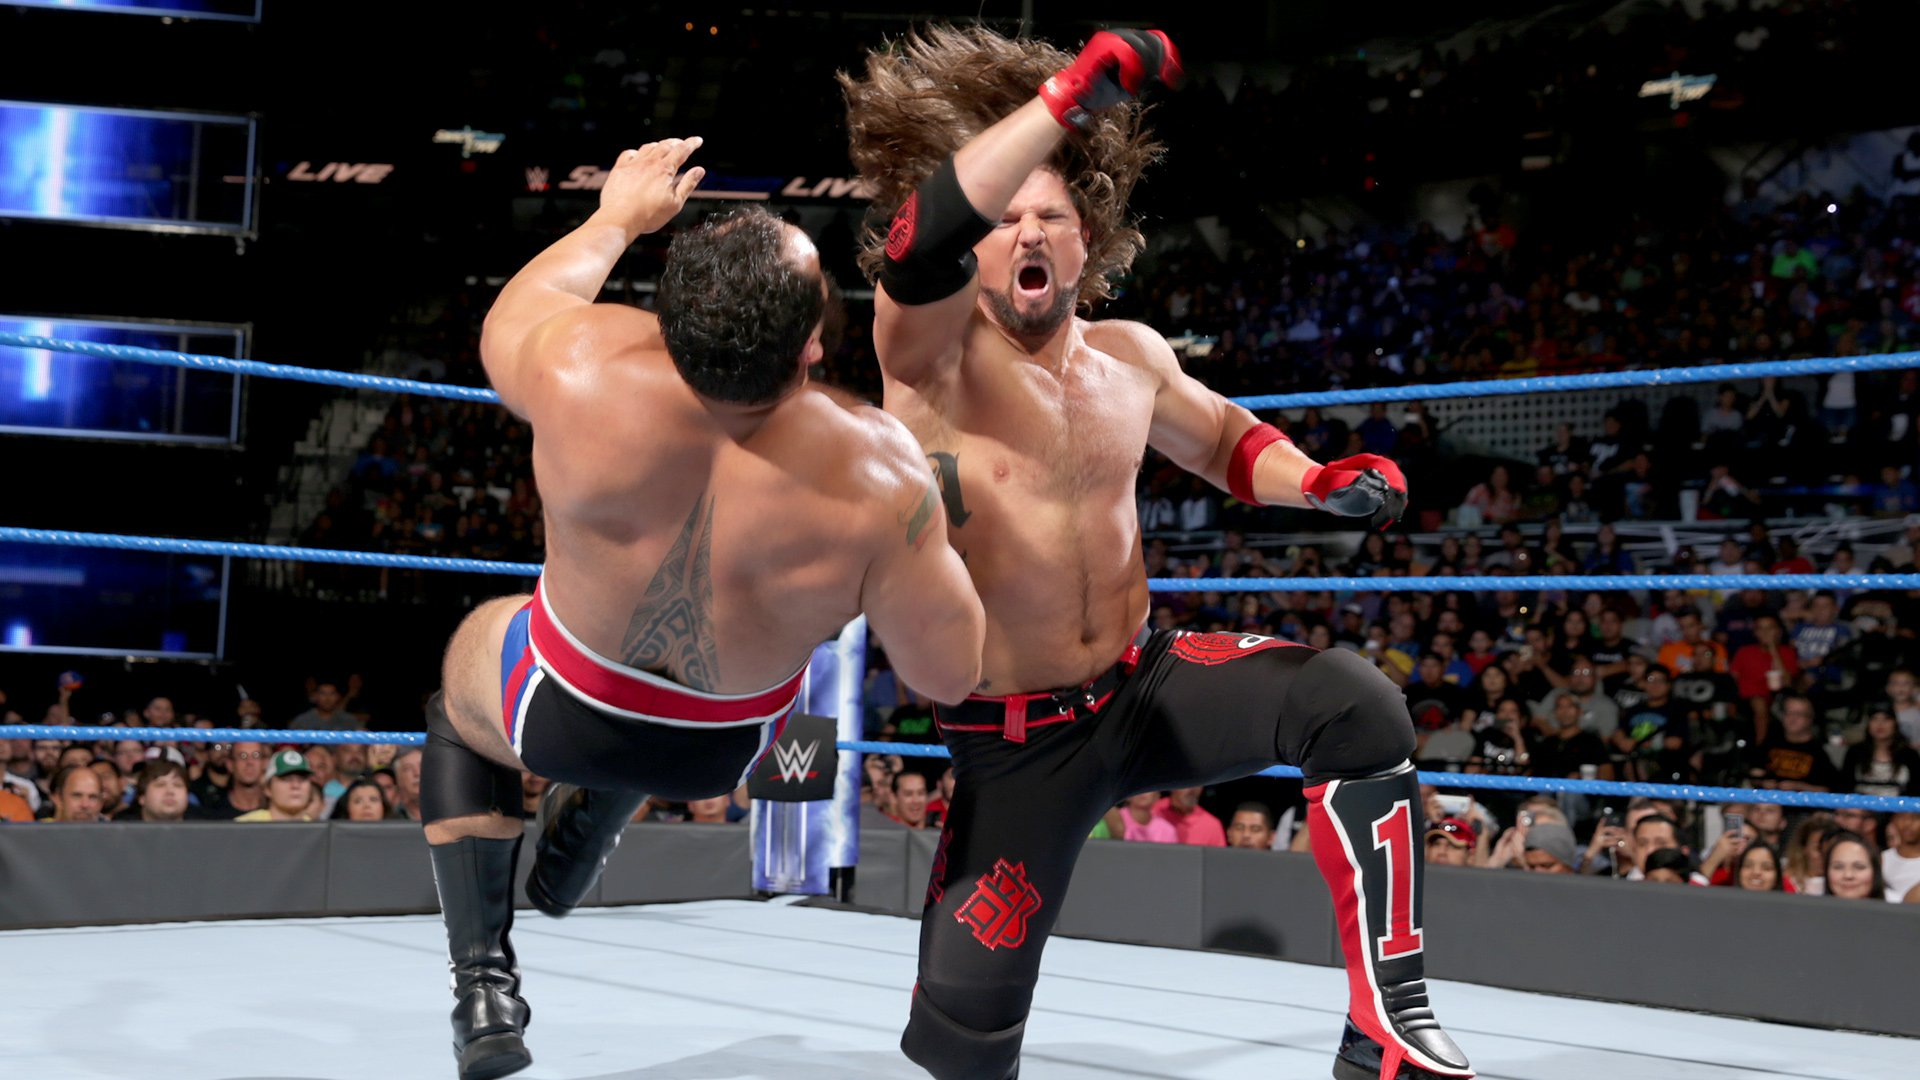 AJ Styles gets the tag, drops Rusev to the canvas...